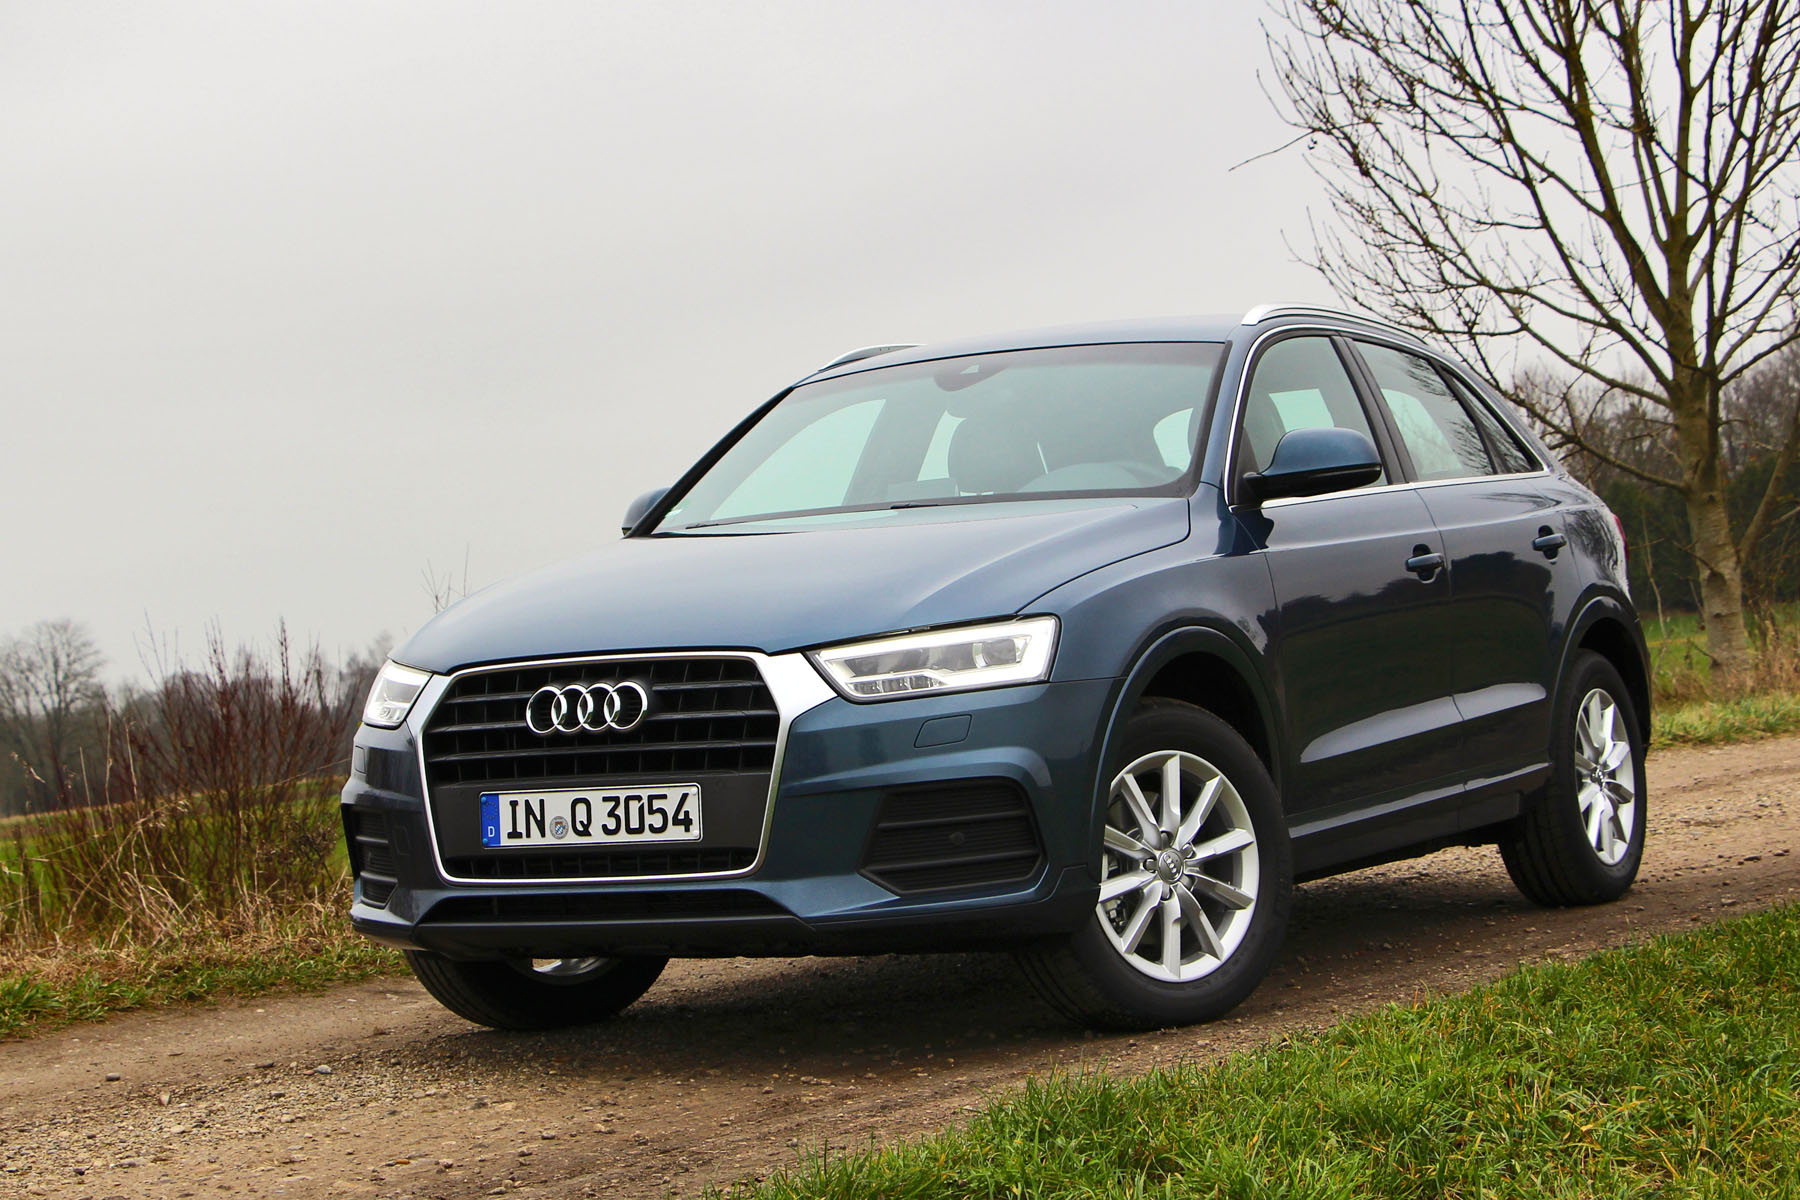 Also over in Europe, Audi offers a selection of up to 11 powertrains, with a variety of  diesels and gasoline turbos and manual or automatic transmissions. This one was the basic 2.0L diesel, and as efficient as it might be, was a tad sluggish for our tastes.